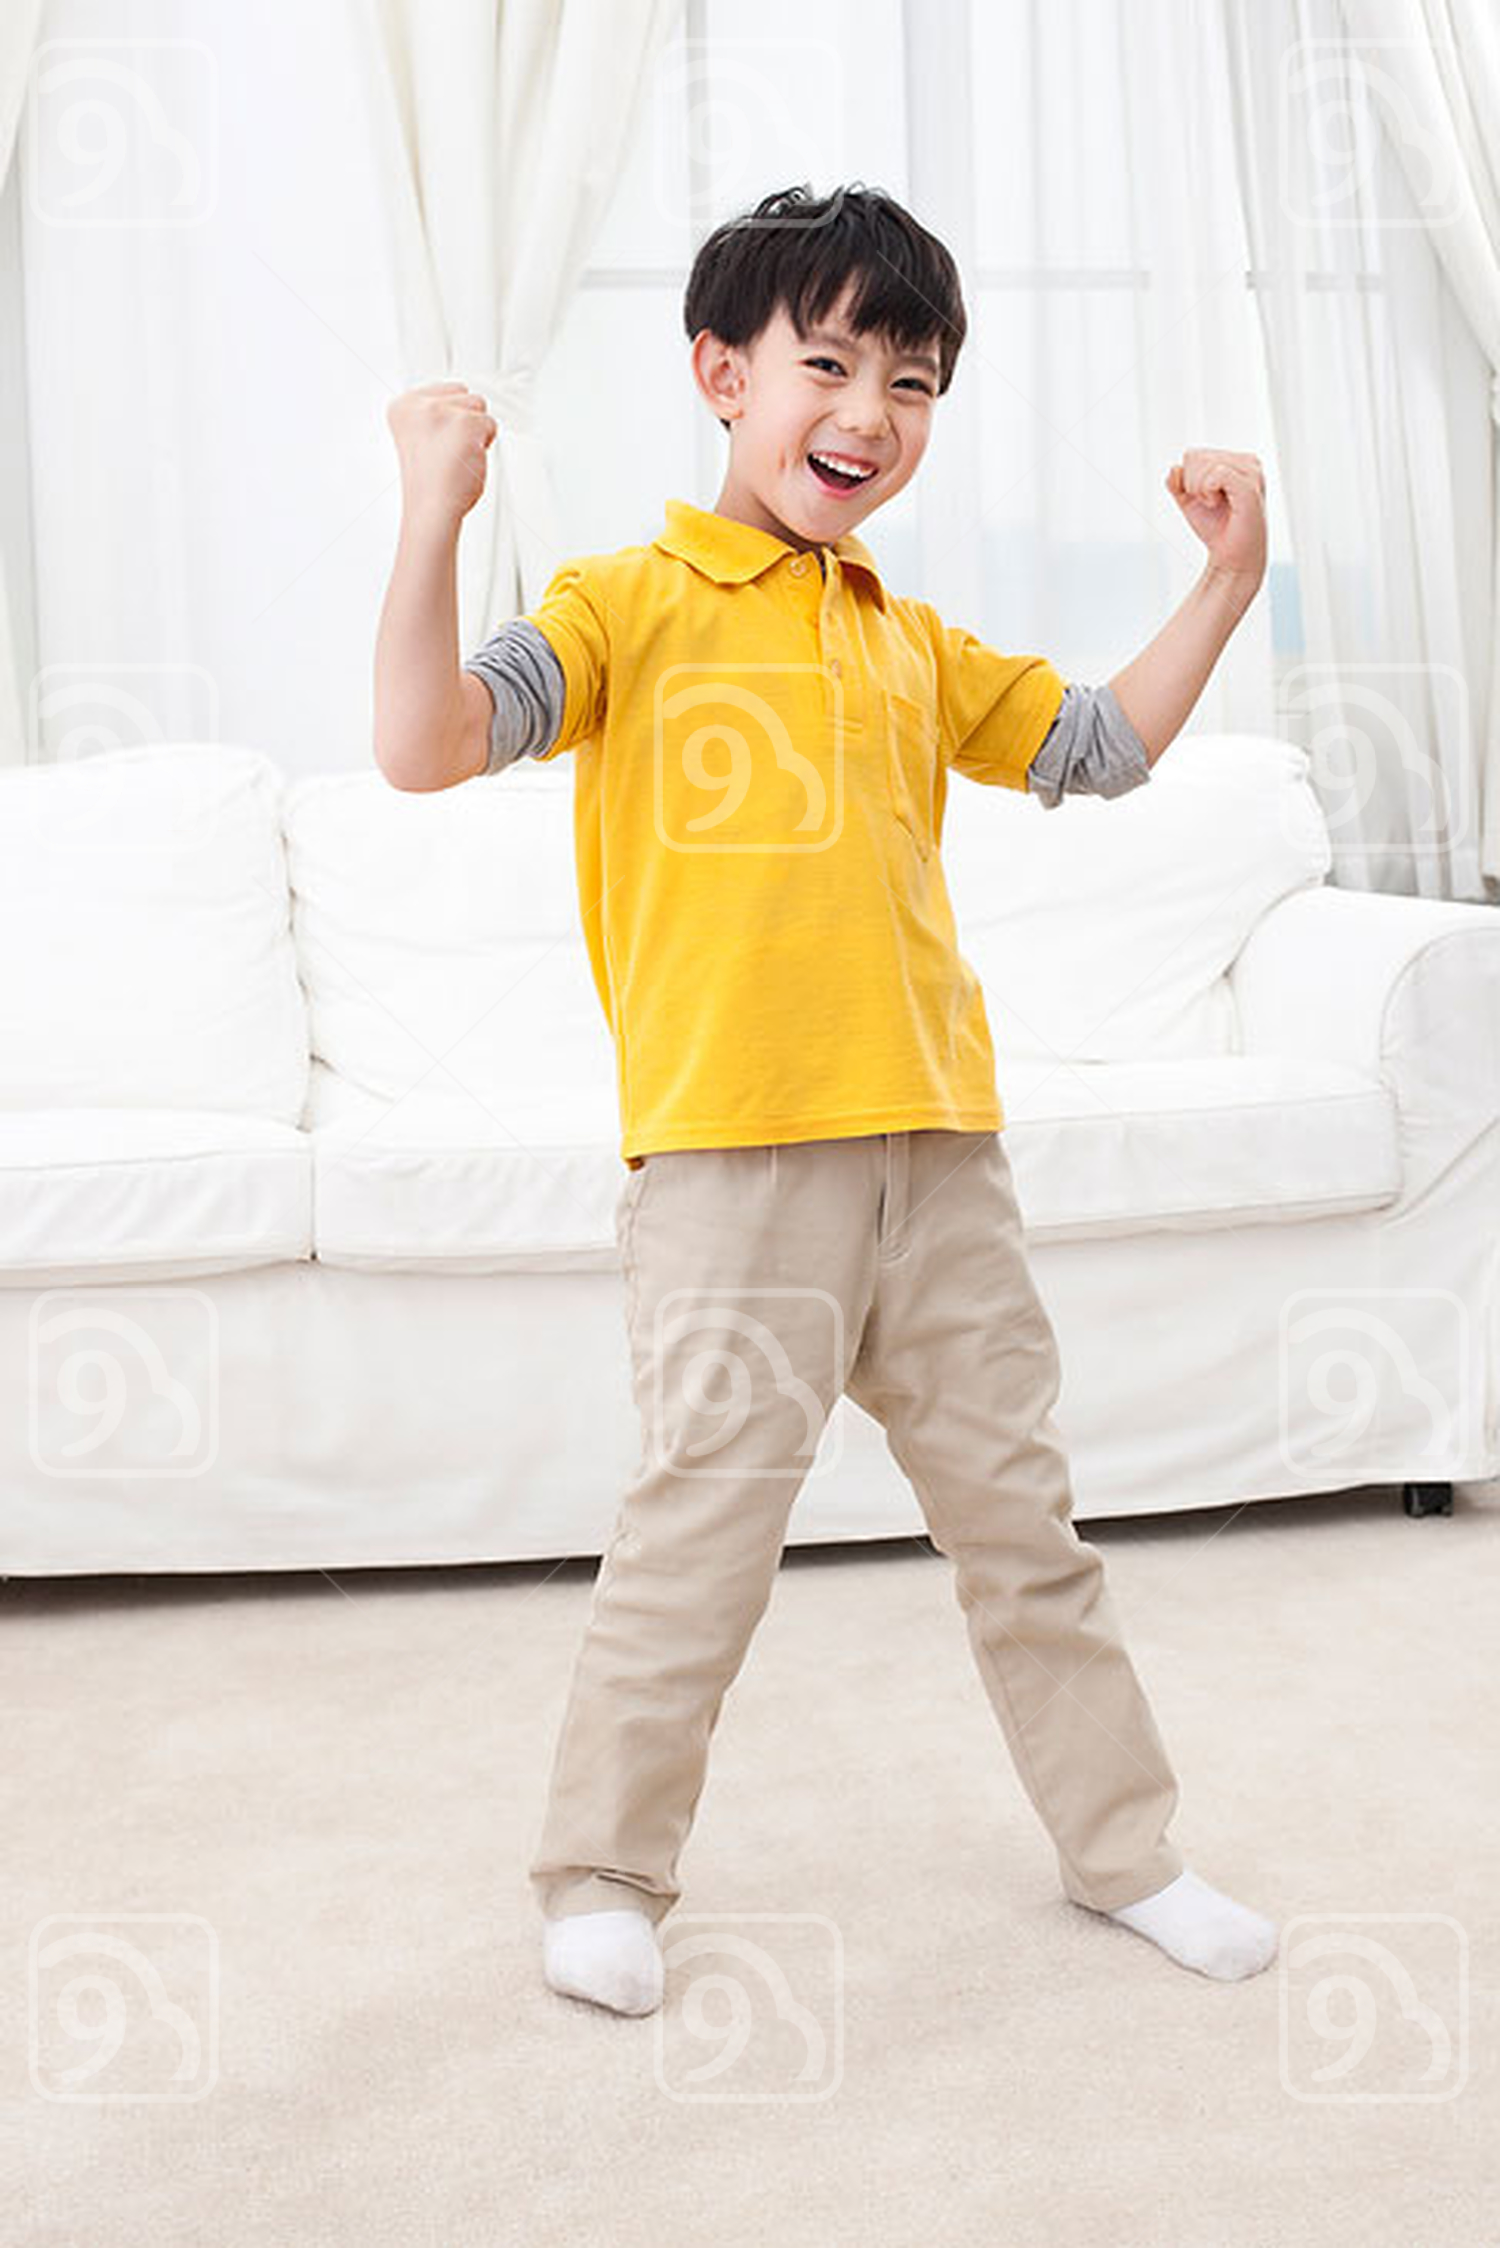 Little Chinese boy showing his strength